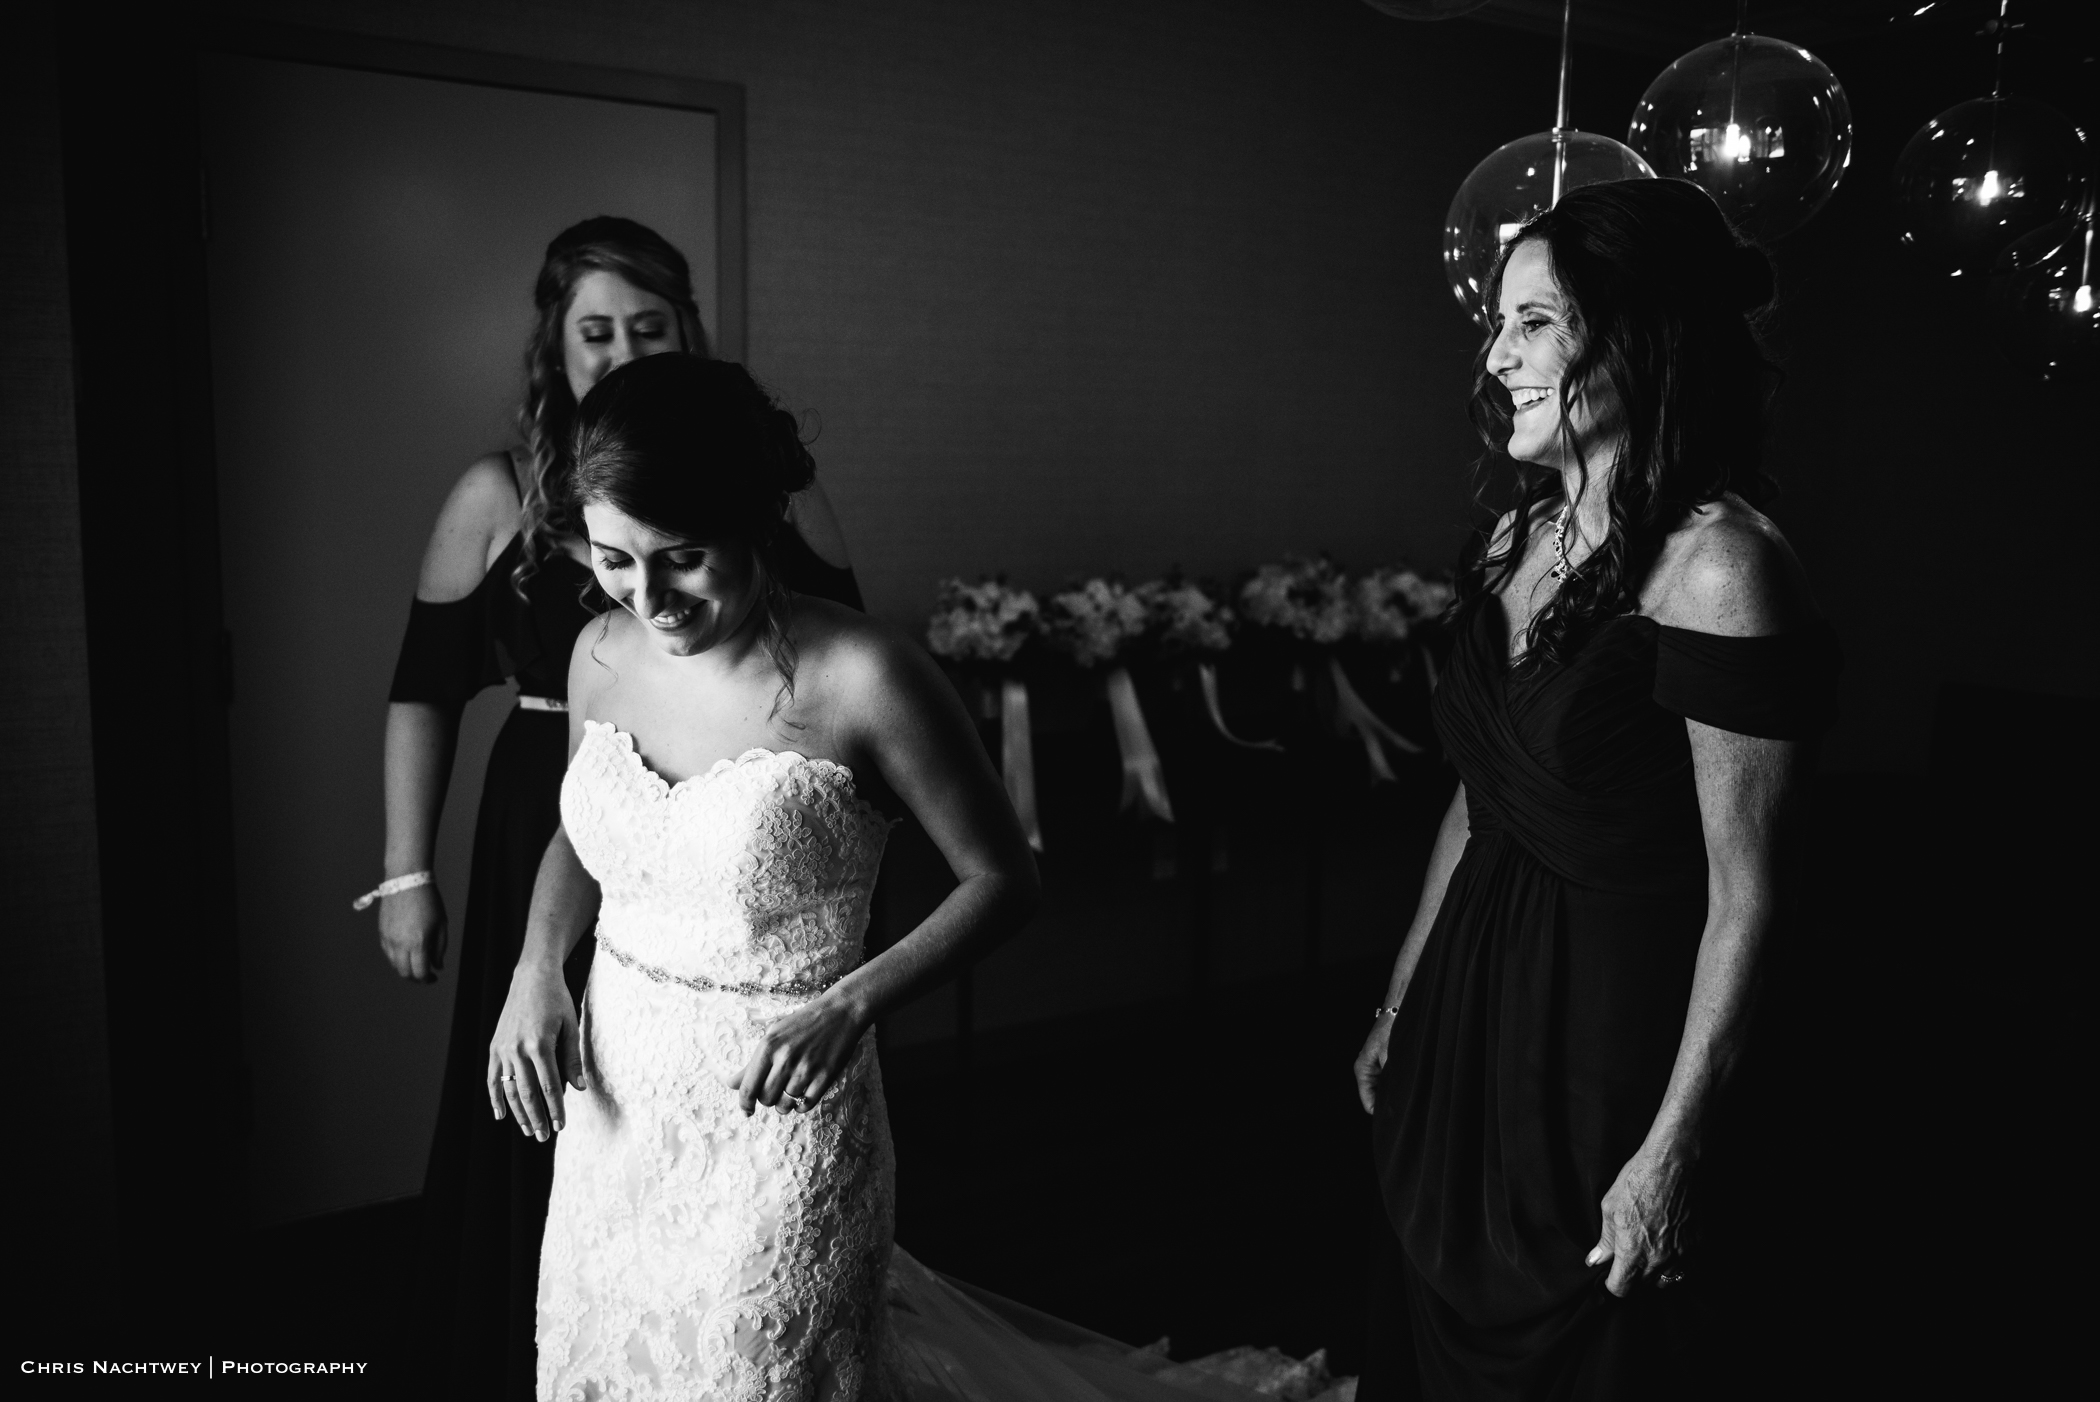 wedding-branford-house-groton-connecticut-photos-chris-nachtwey-amanda-todd-2018-5.jpg